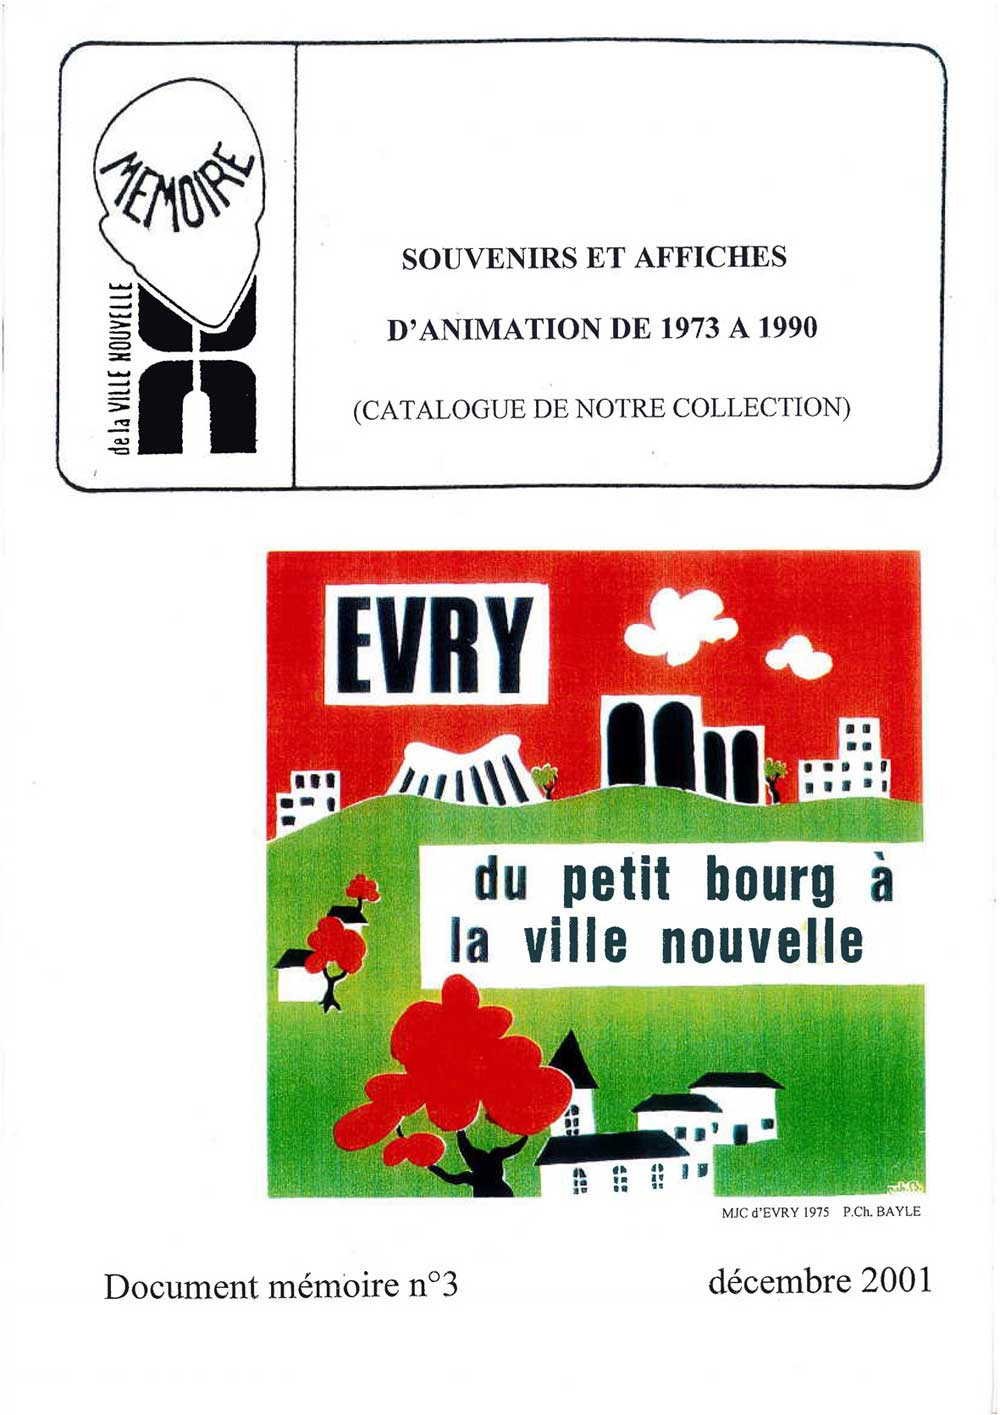 Document mémoire n°3 (2001)